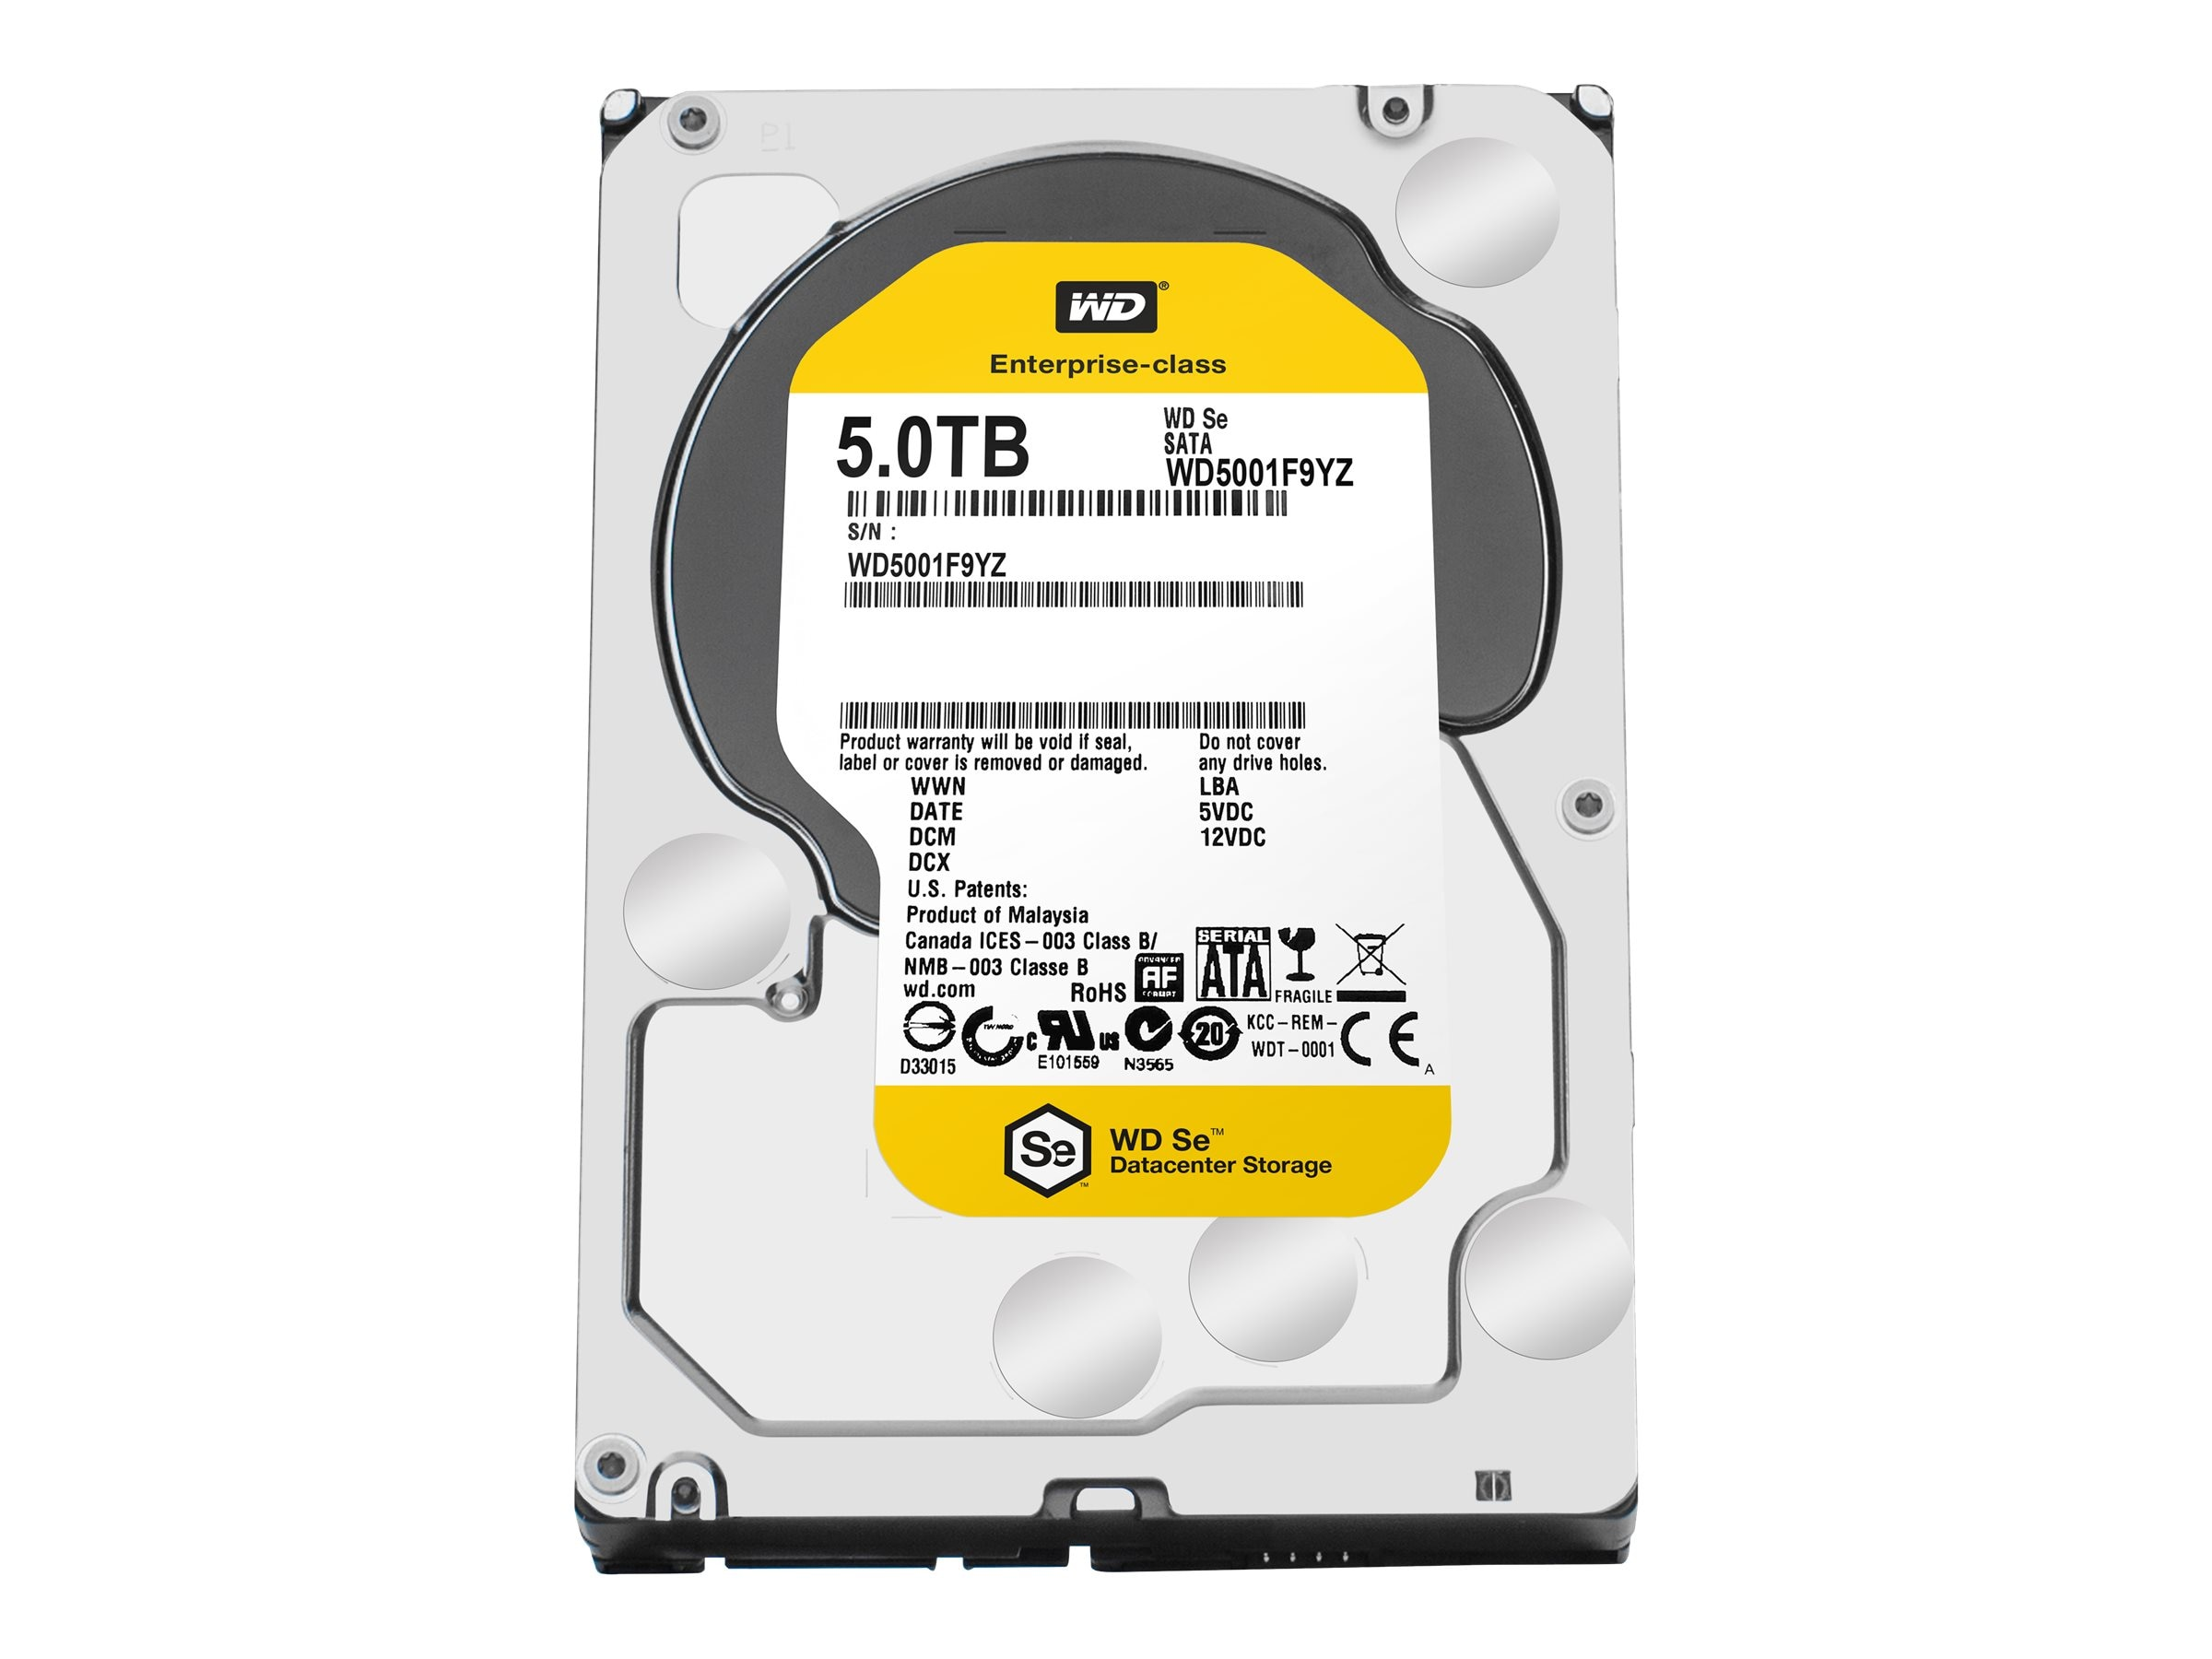 WD WD5001F9YZ Image 3